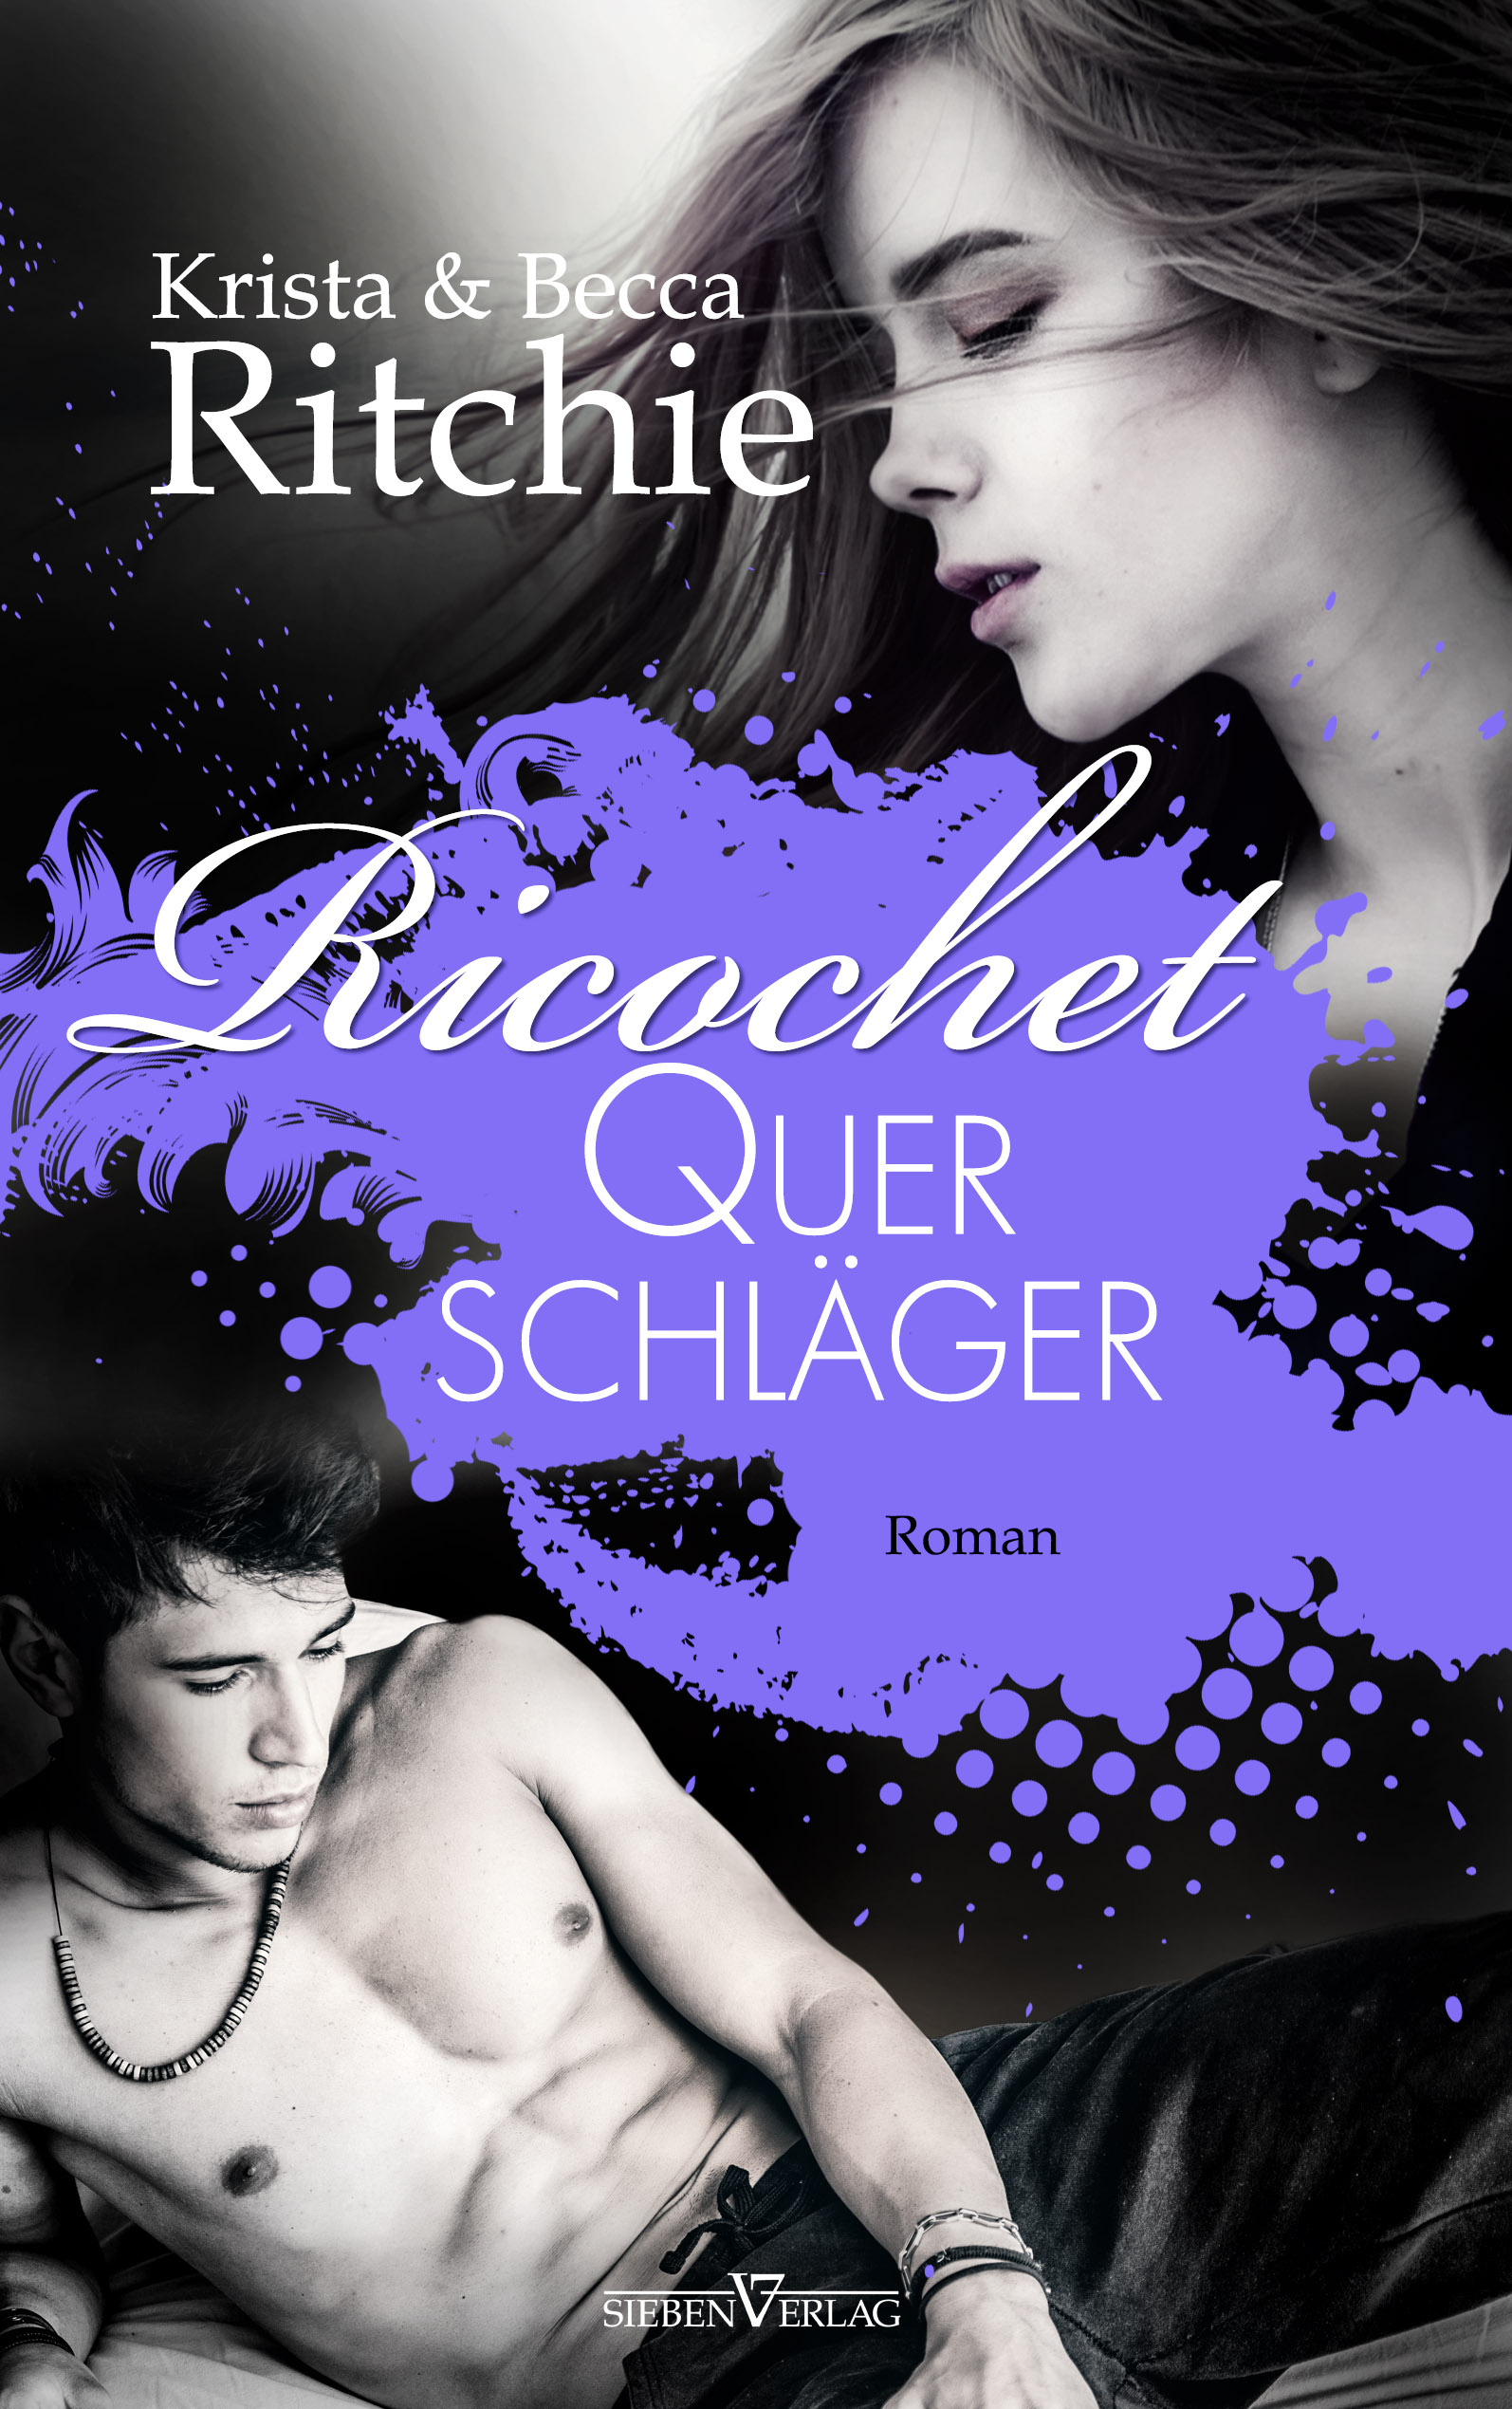 Ricochet - Querschläger / Addicted to you 1.5